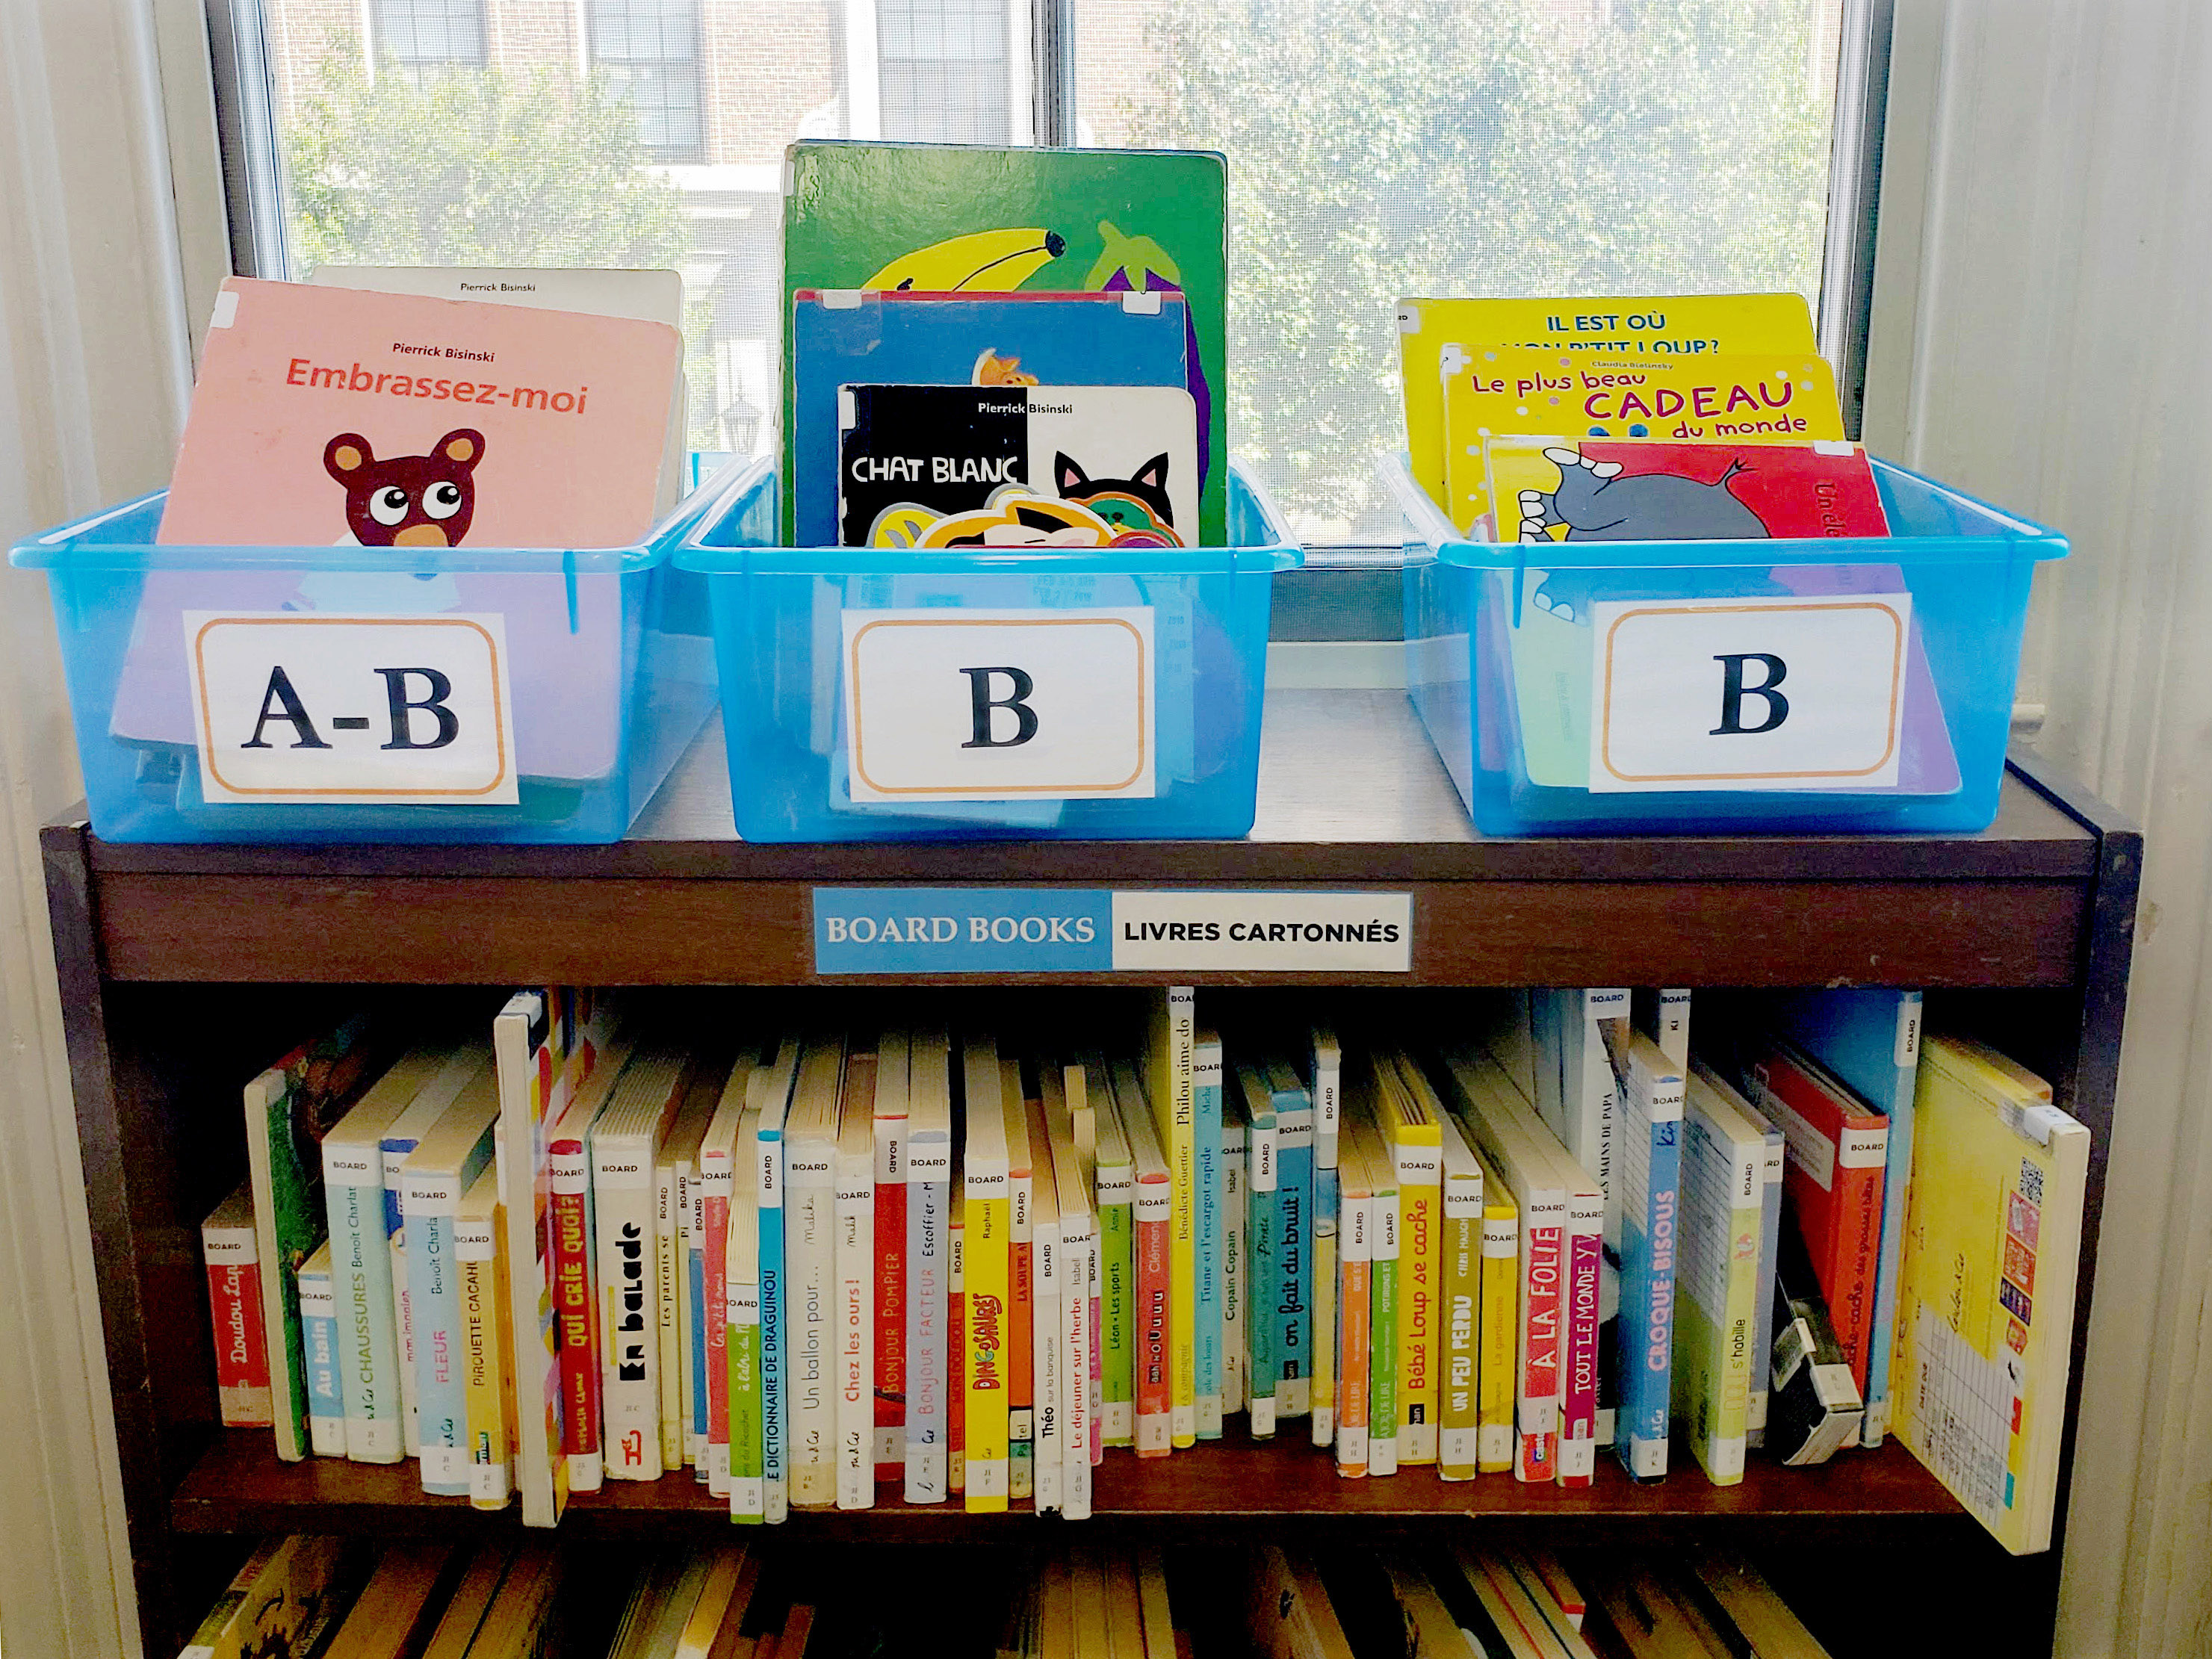 Board book shelves by the window